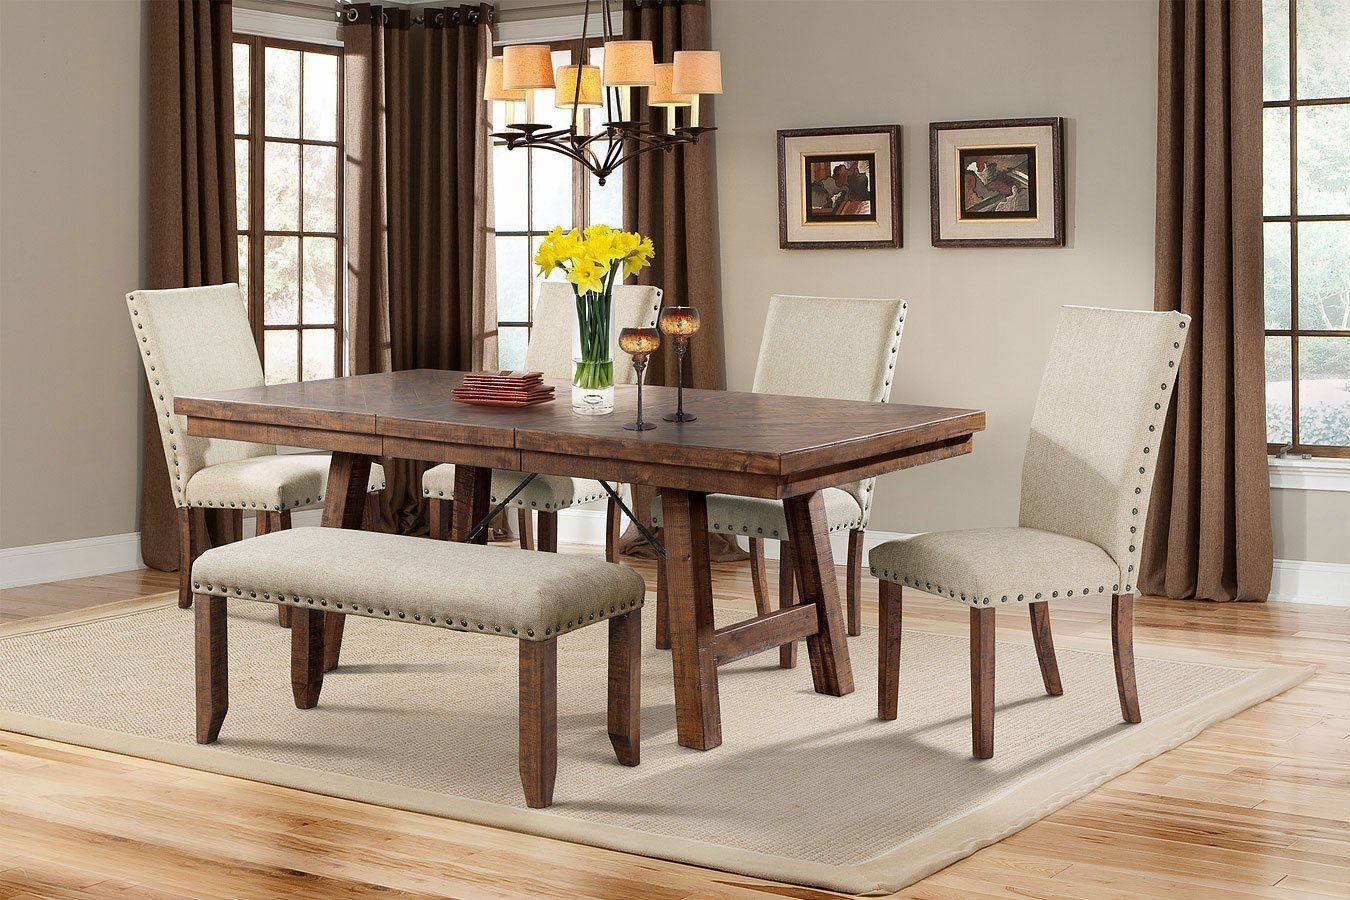 jax dining room set  upholstered chairs  bench elements furniture furniture cart